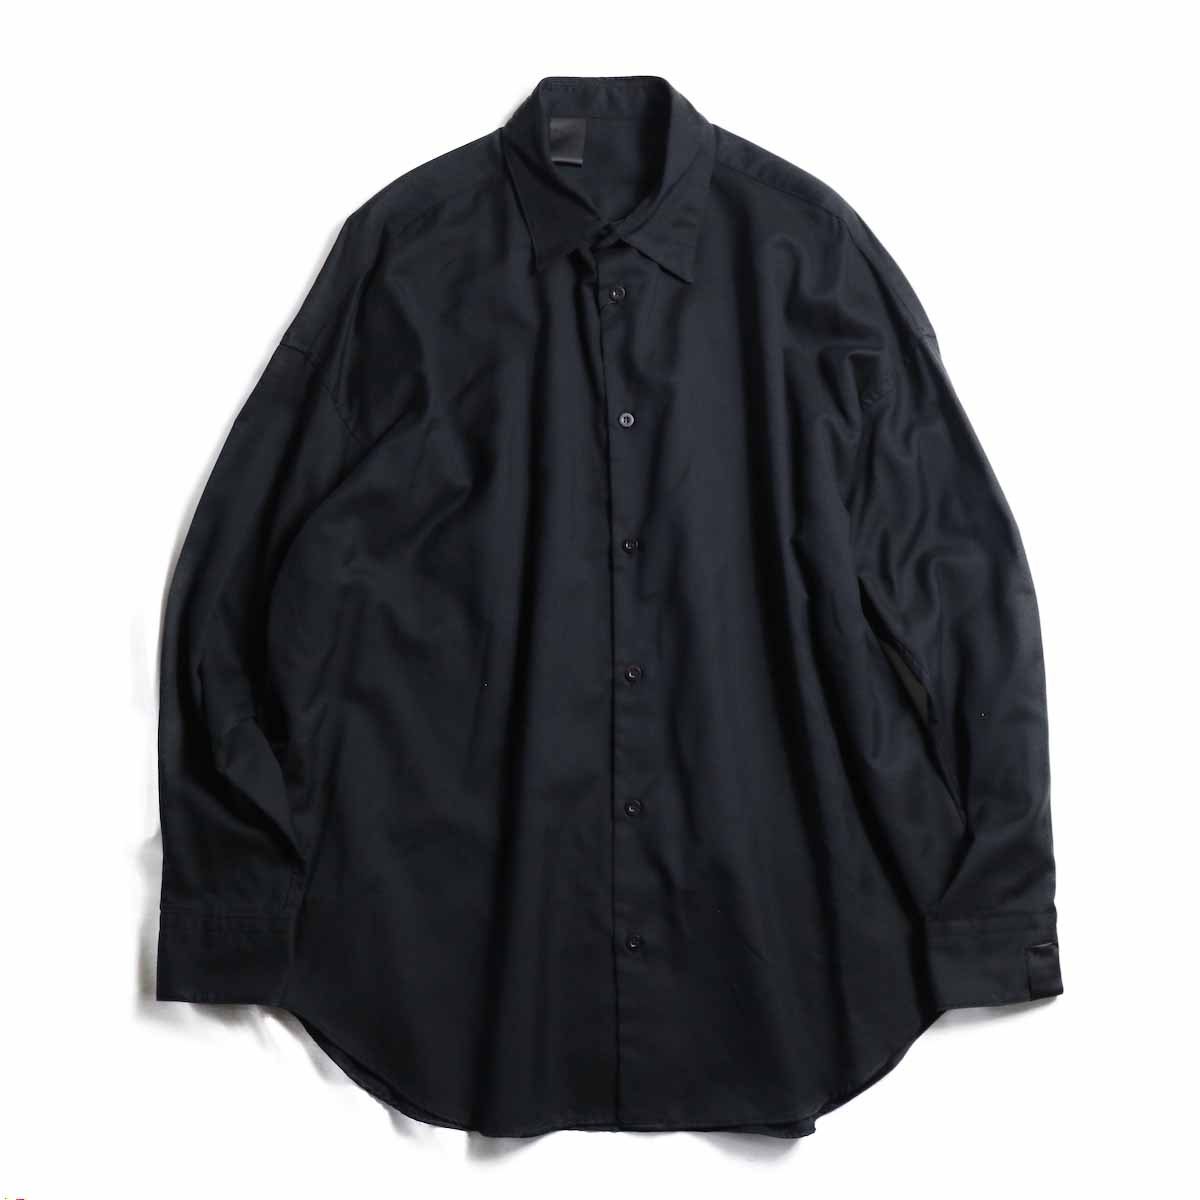 N.HOOLYWOOD / 282-SH09-012-peg LONG SLEEVE SHIRT -BLACK